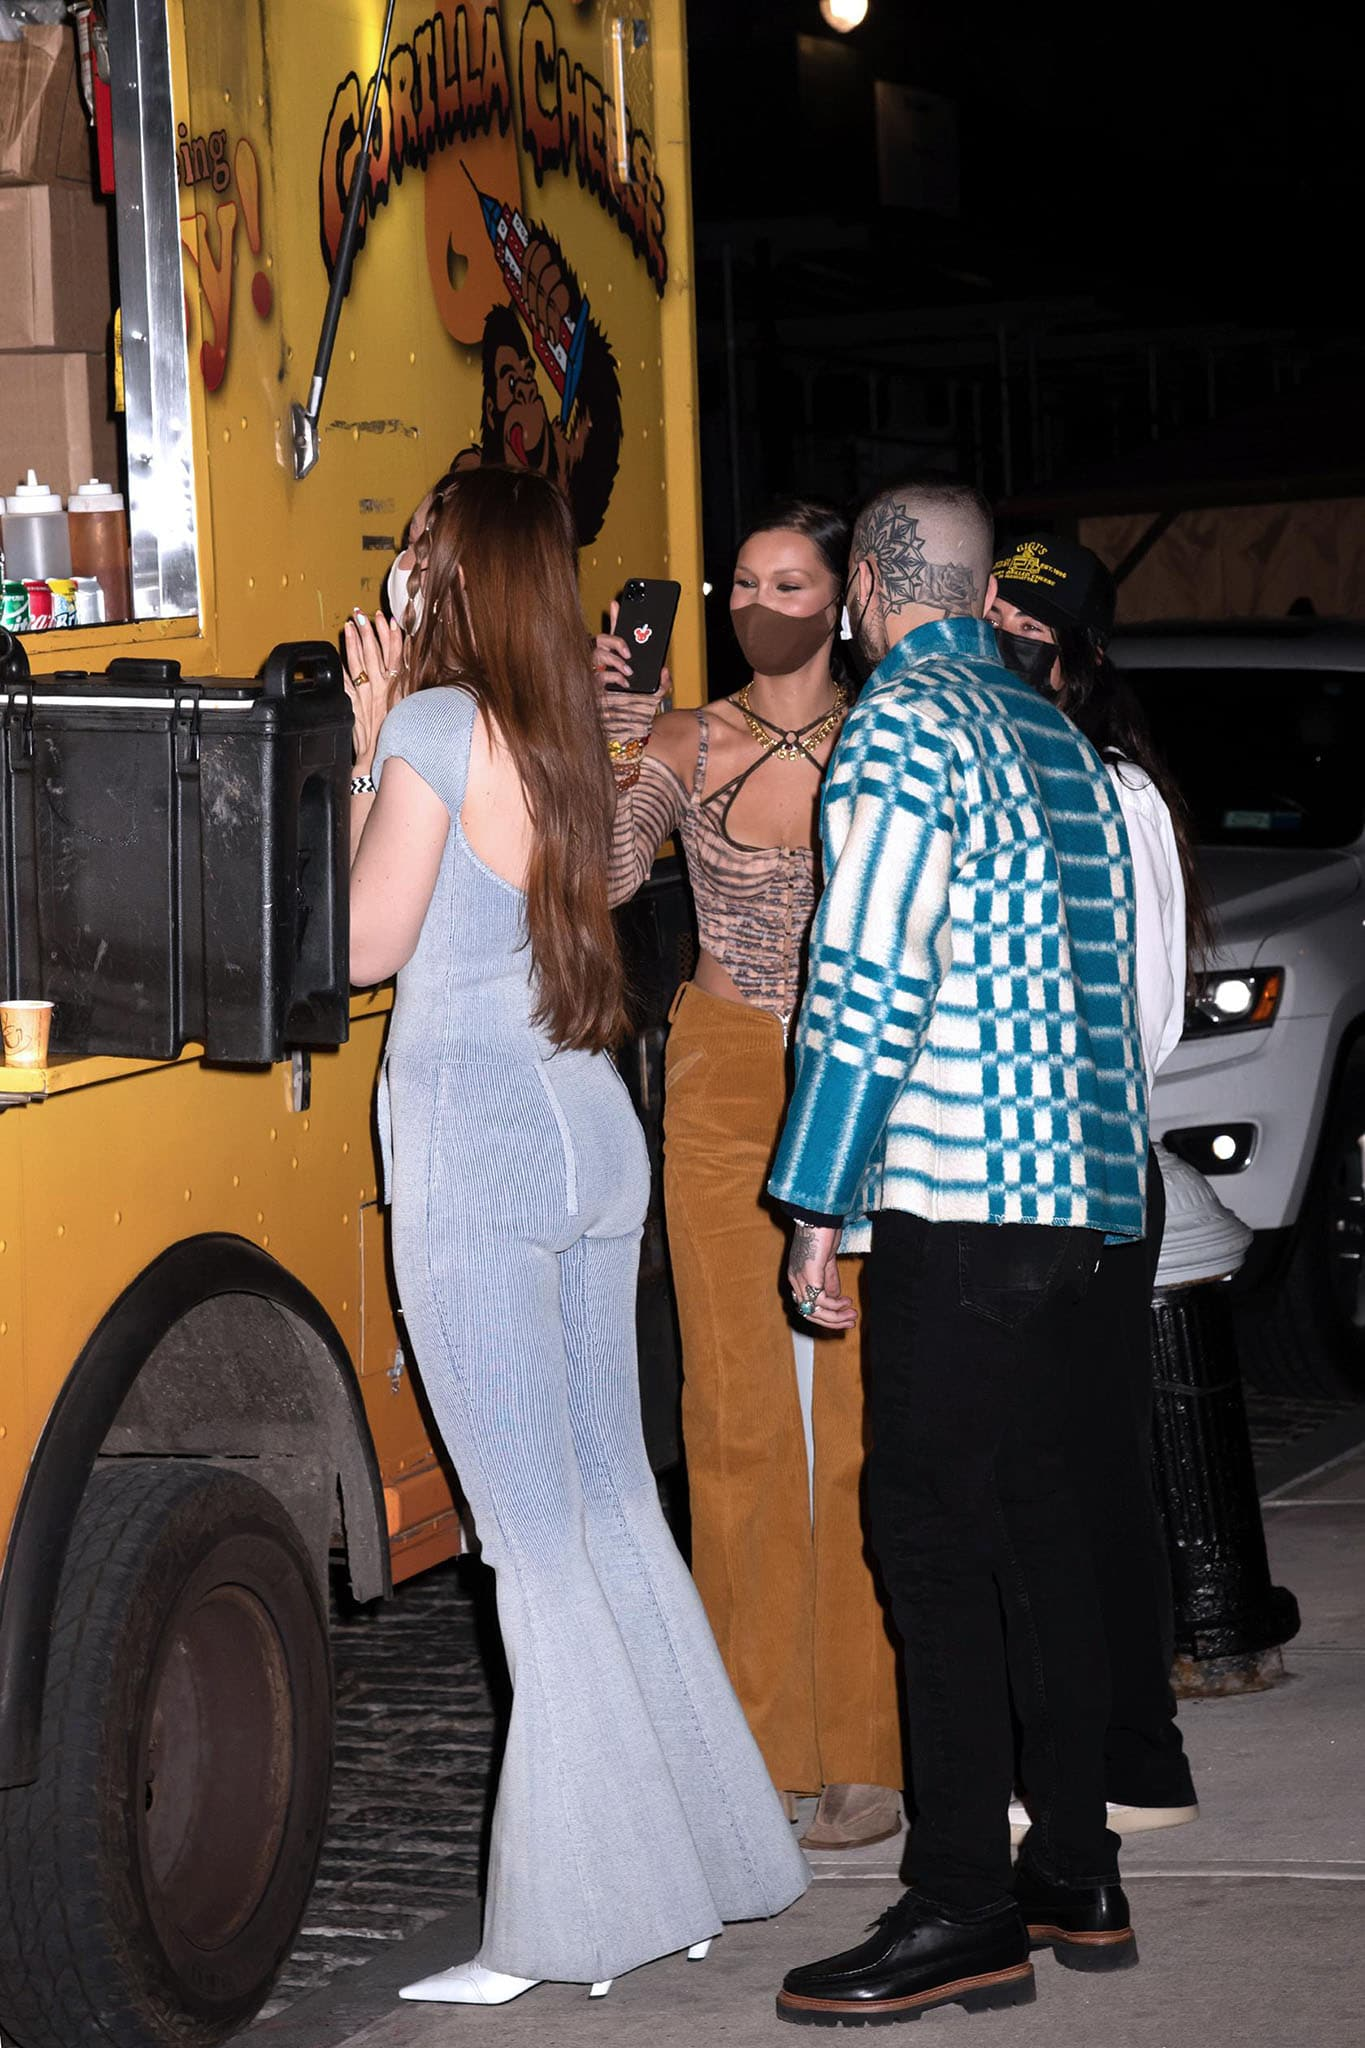 Gigi Hadid celebrates her 26th birthday with a cheese-themed party with boyfriend Zayn Malik and sister Bella Hadid in New York City on April 23, 2021